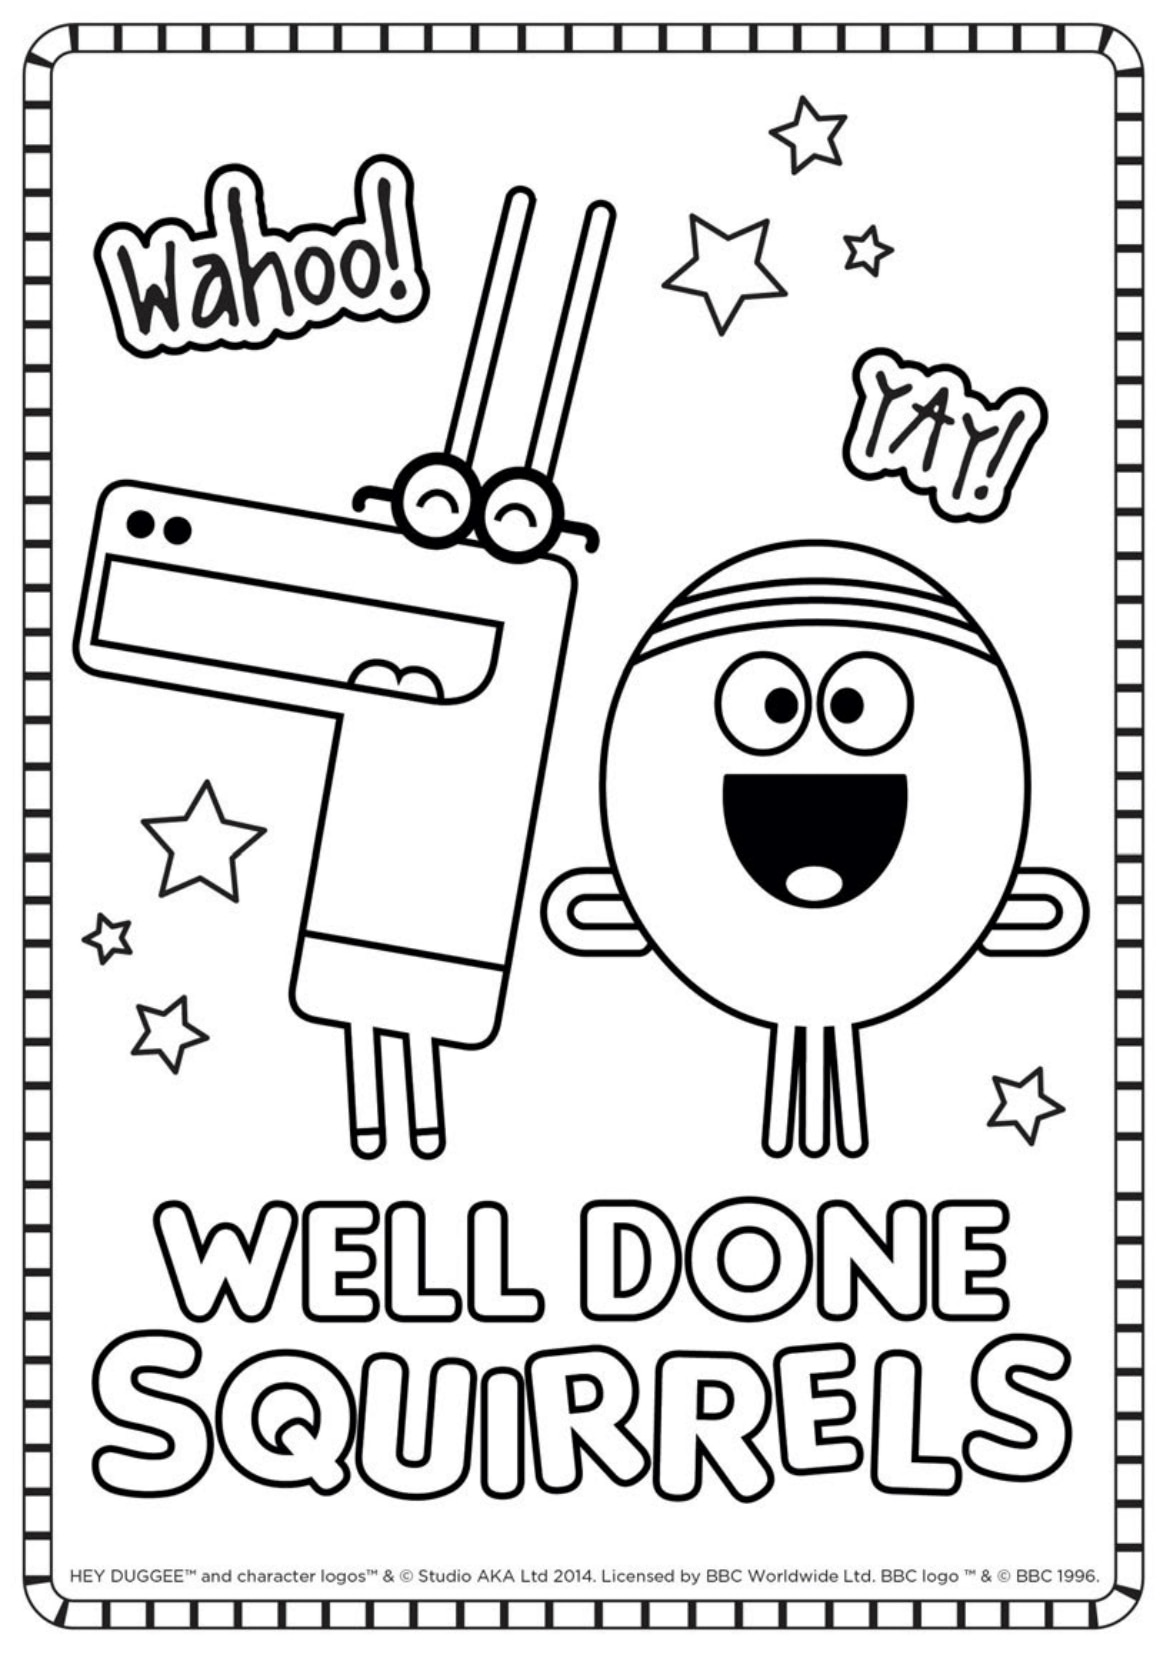 Well Done Squirrels Colouring Sheet